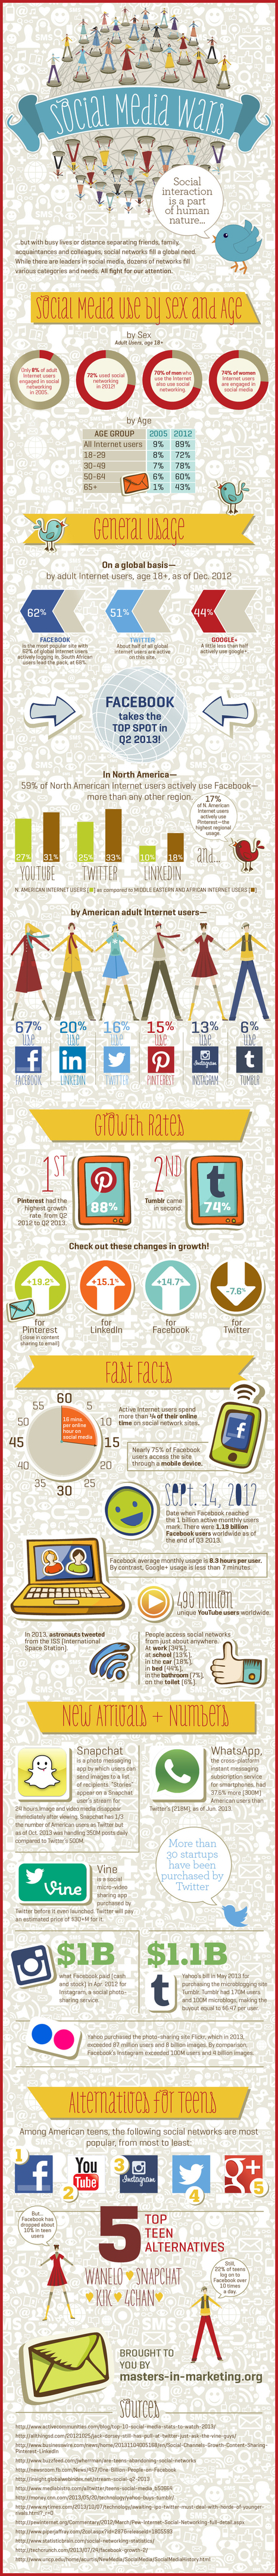 The Social Media Wars [INFOGRAPHIC] | Wiki_Universe | Scoop.it